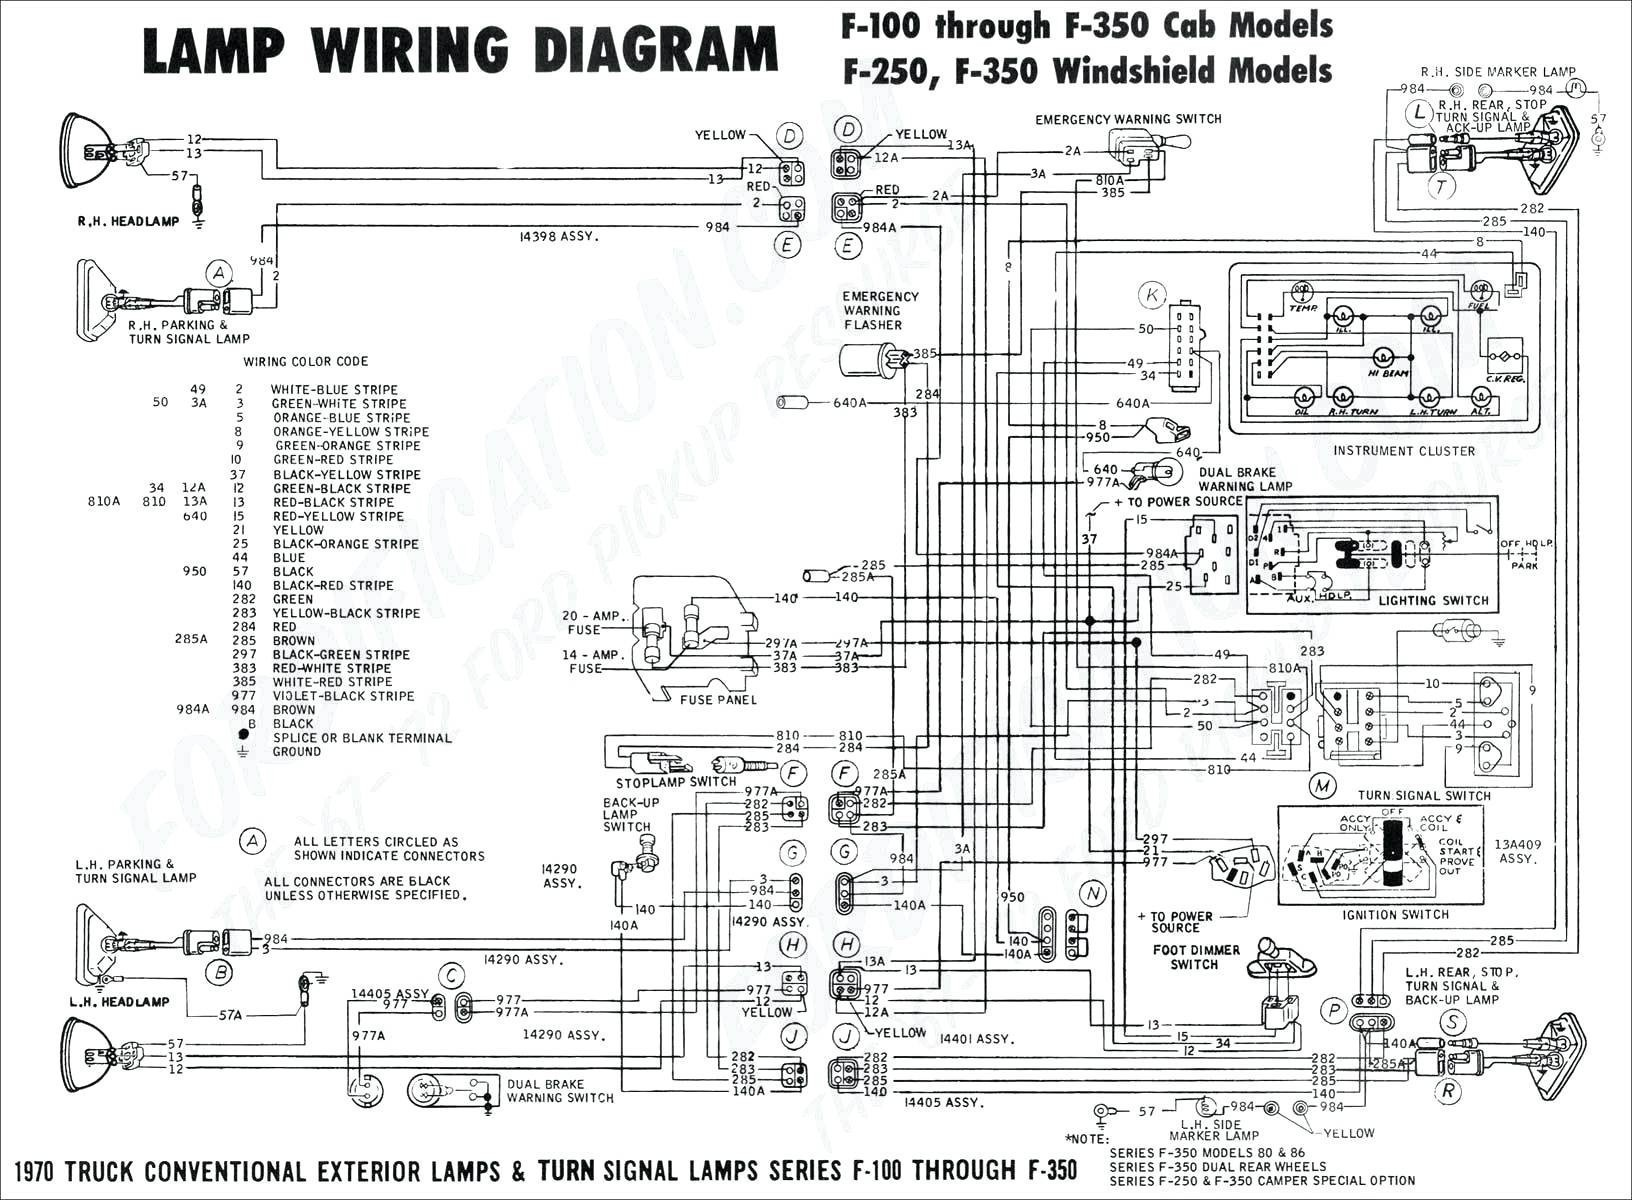 98 ford f150 wiring diagram auto electrical wiring diagram rh wiringdiagramstake herokuapp com 98 ford f150 wire diagram 98 f150 stereo wiring diagram